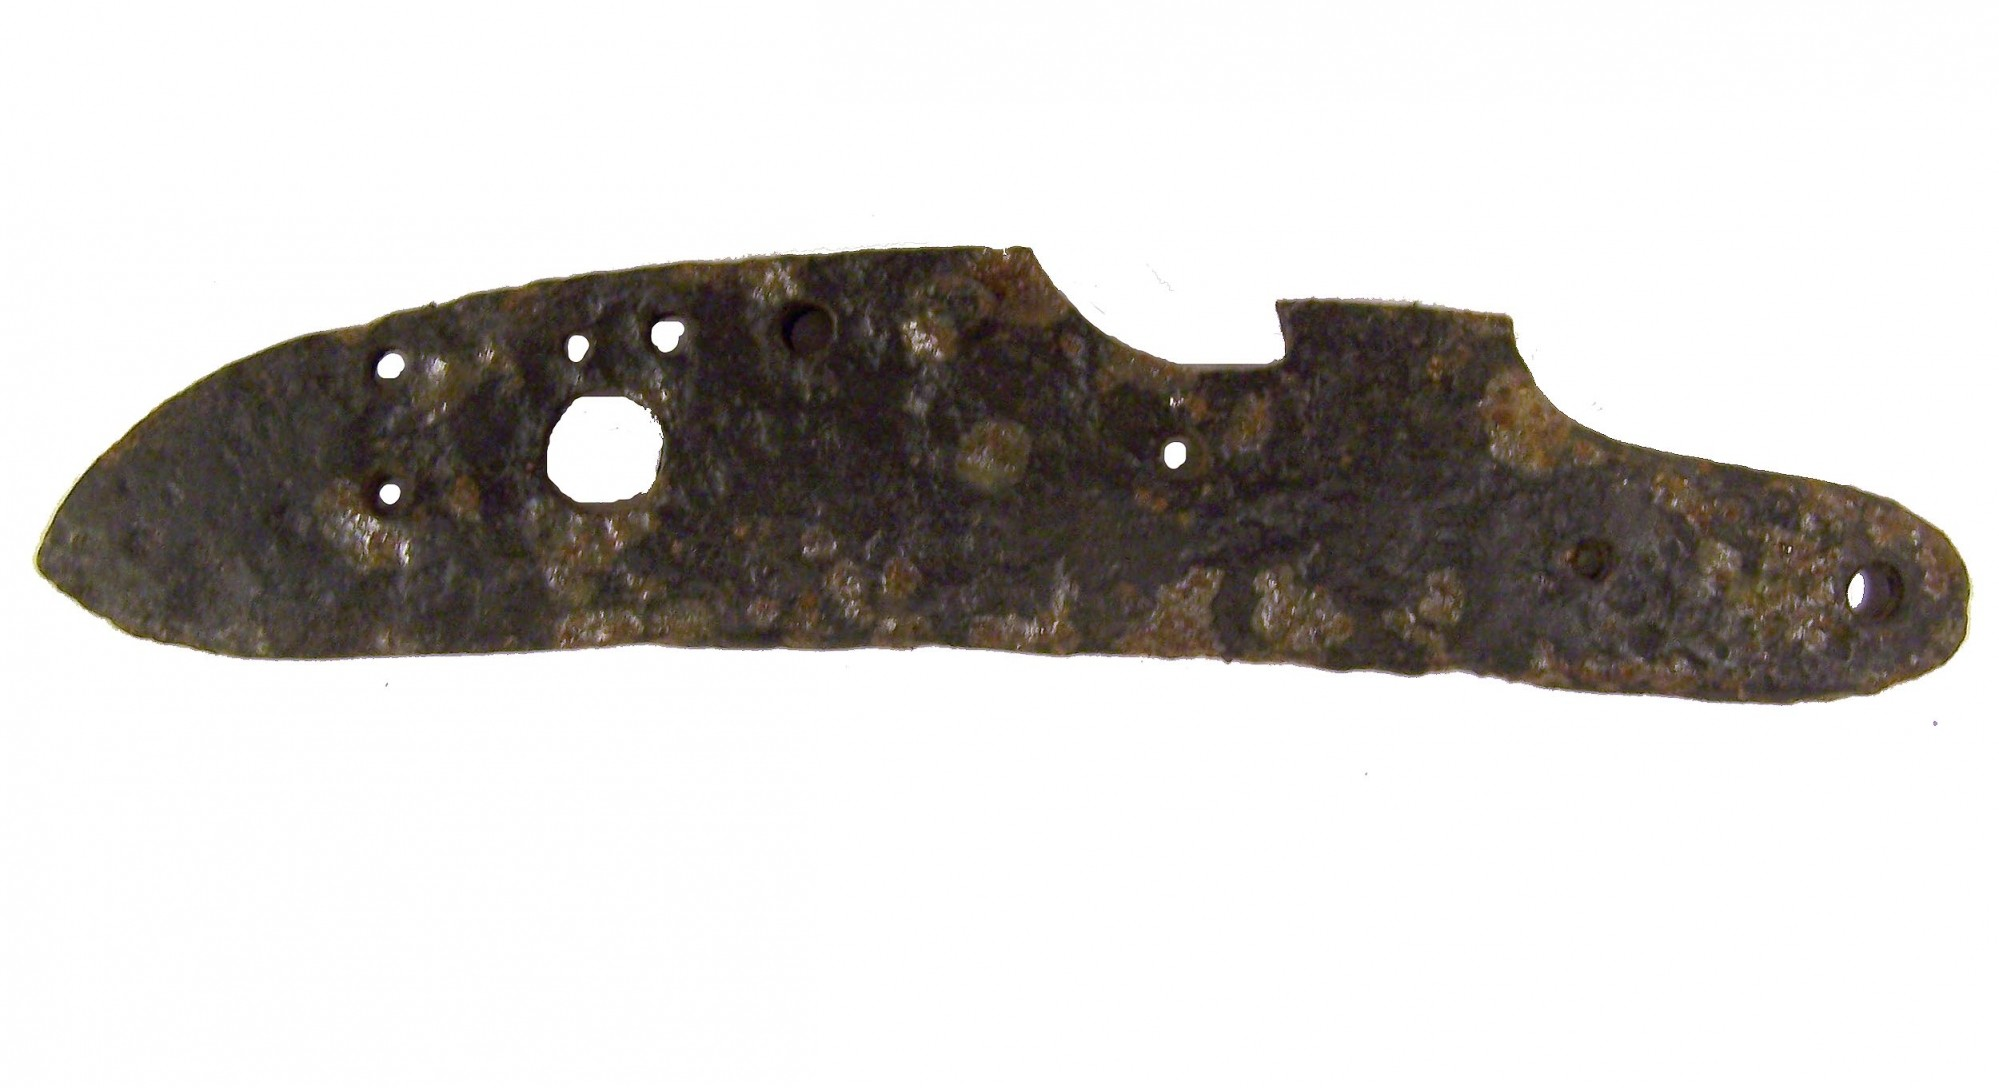 MUSKET LOCKPLATE RECOVERED FROM PORT GIBSON, MISSISSIPPI